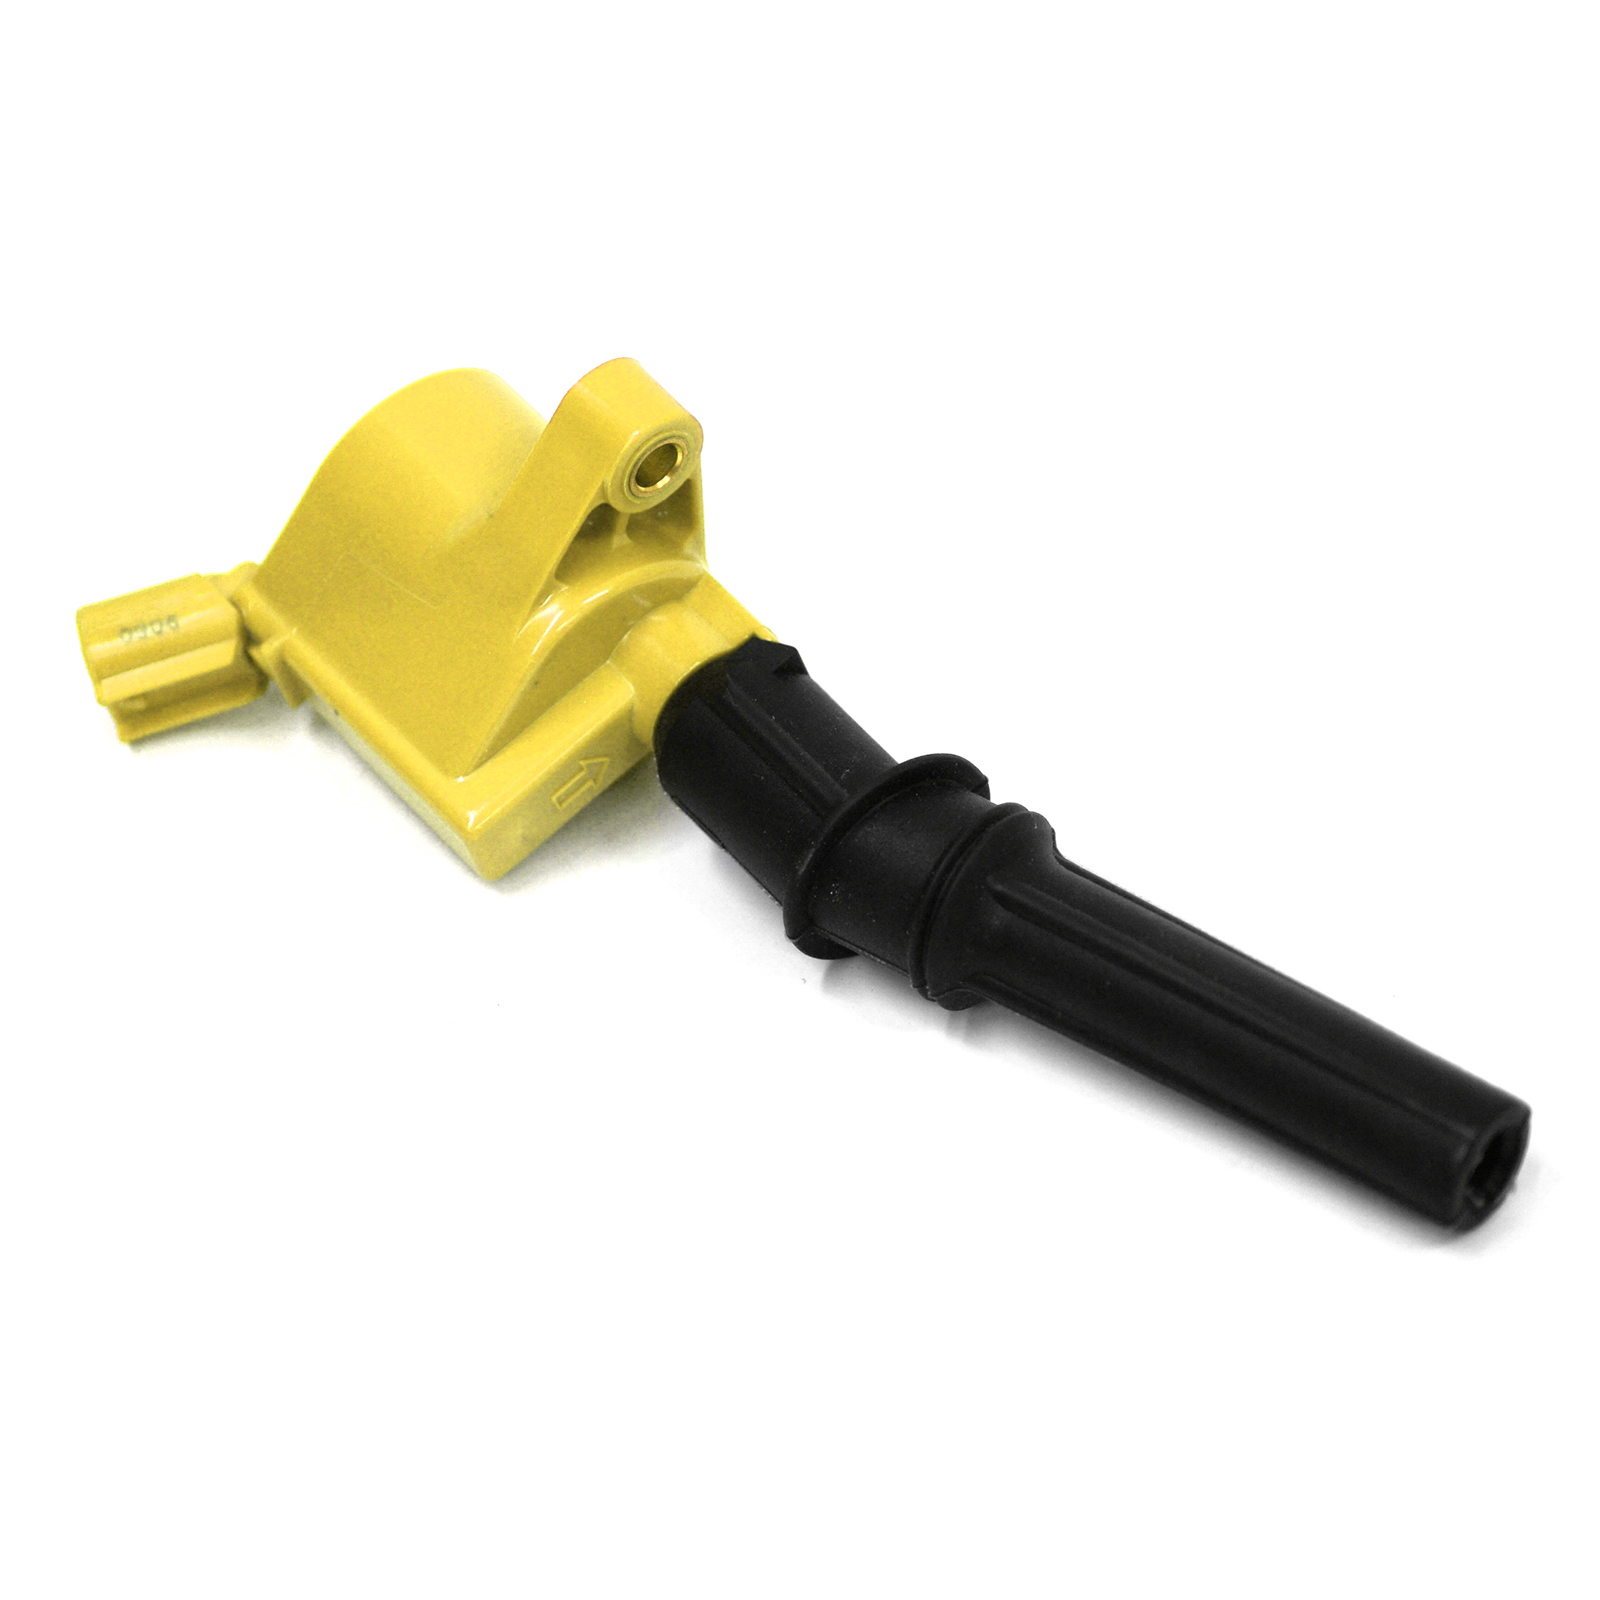 FORD 4.6 5.4L Coil-on-Plug Ignition Coil - Yellow (Indv)